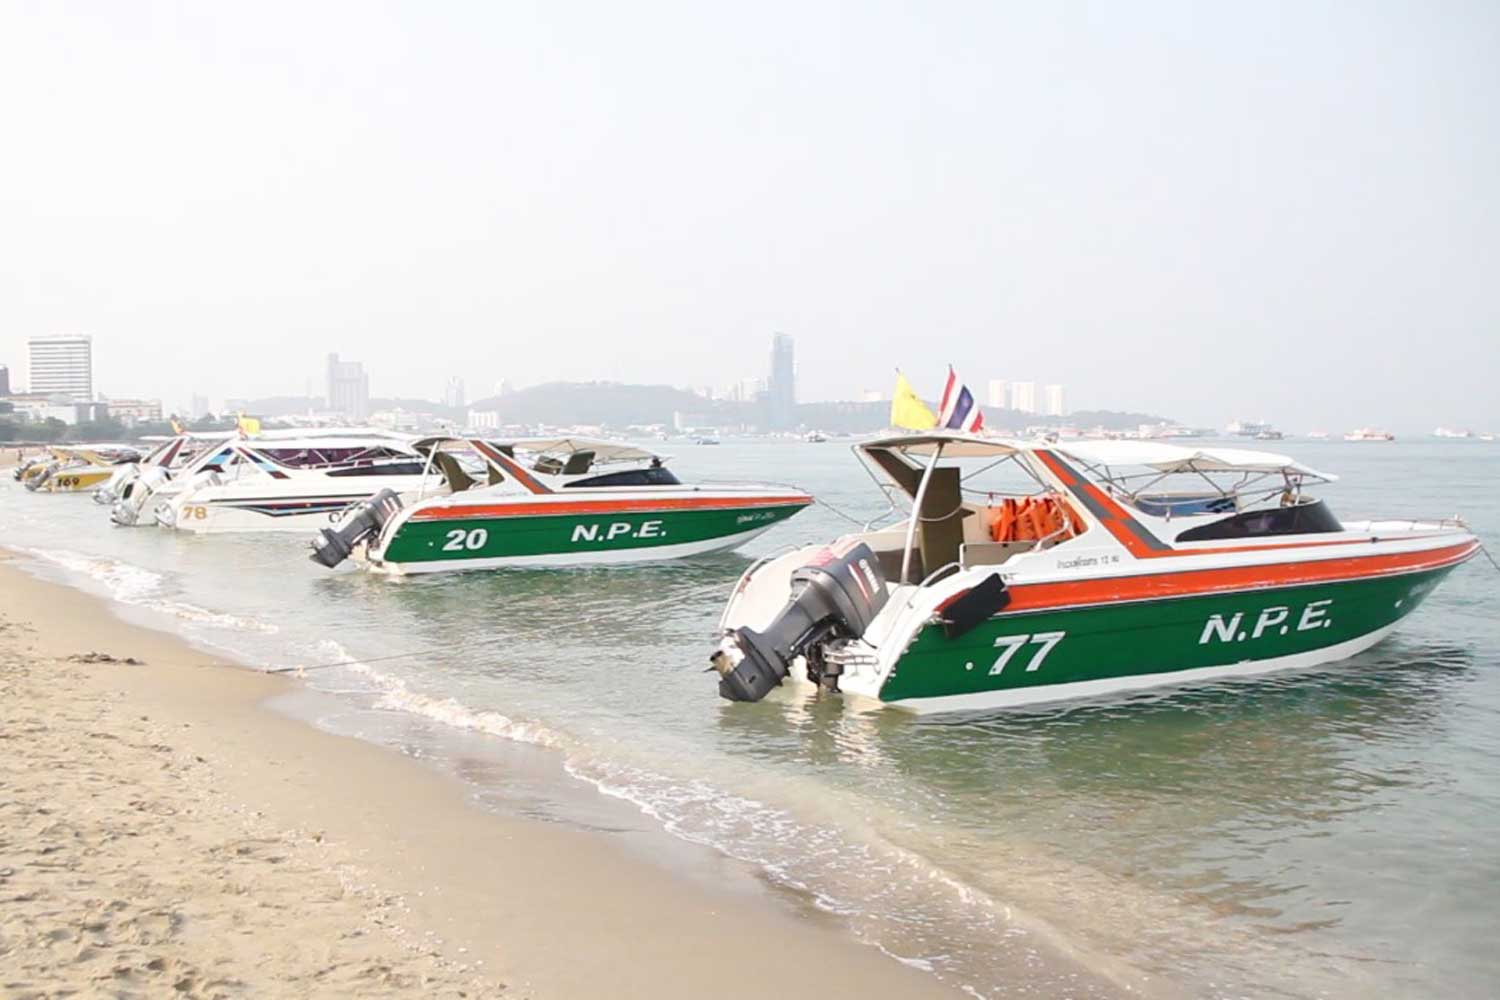 Speedboats wait for tourists on Pattaya beach, Chon Buri. (Photo by Chaiyot Pupattanapong)